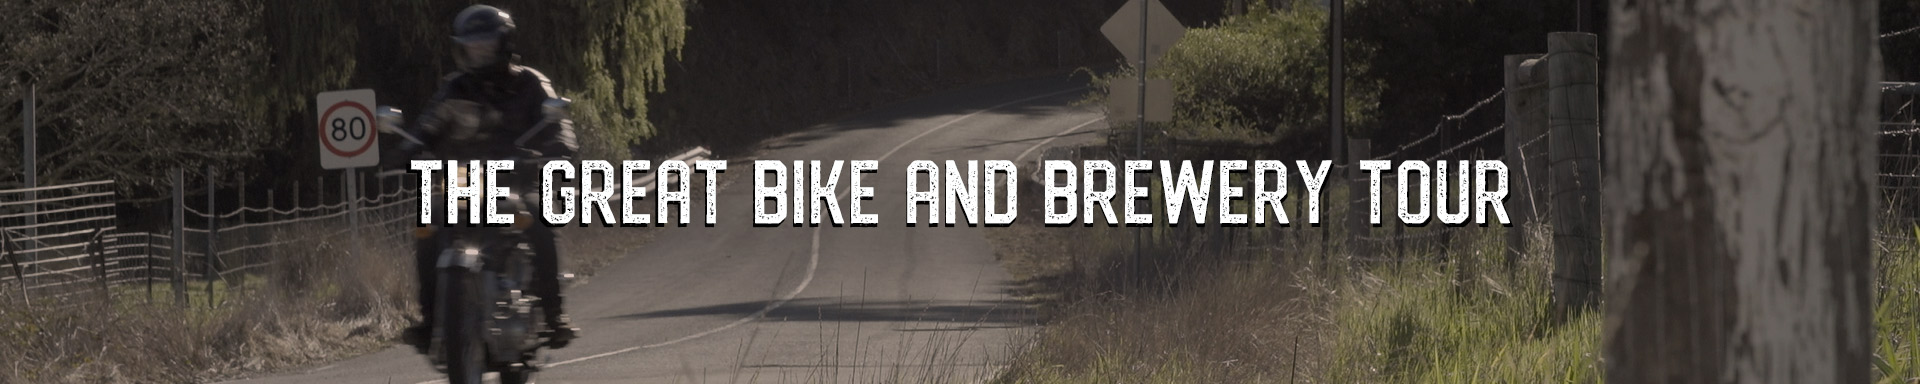 great-bike-and-brewery-tour-tv-show-eb-header